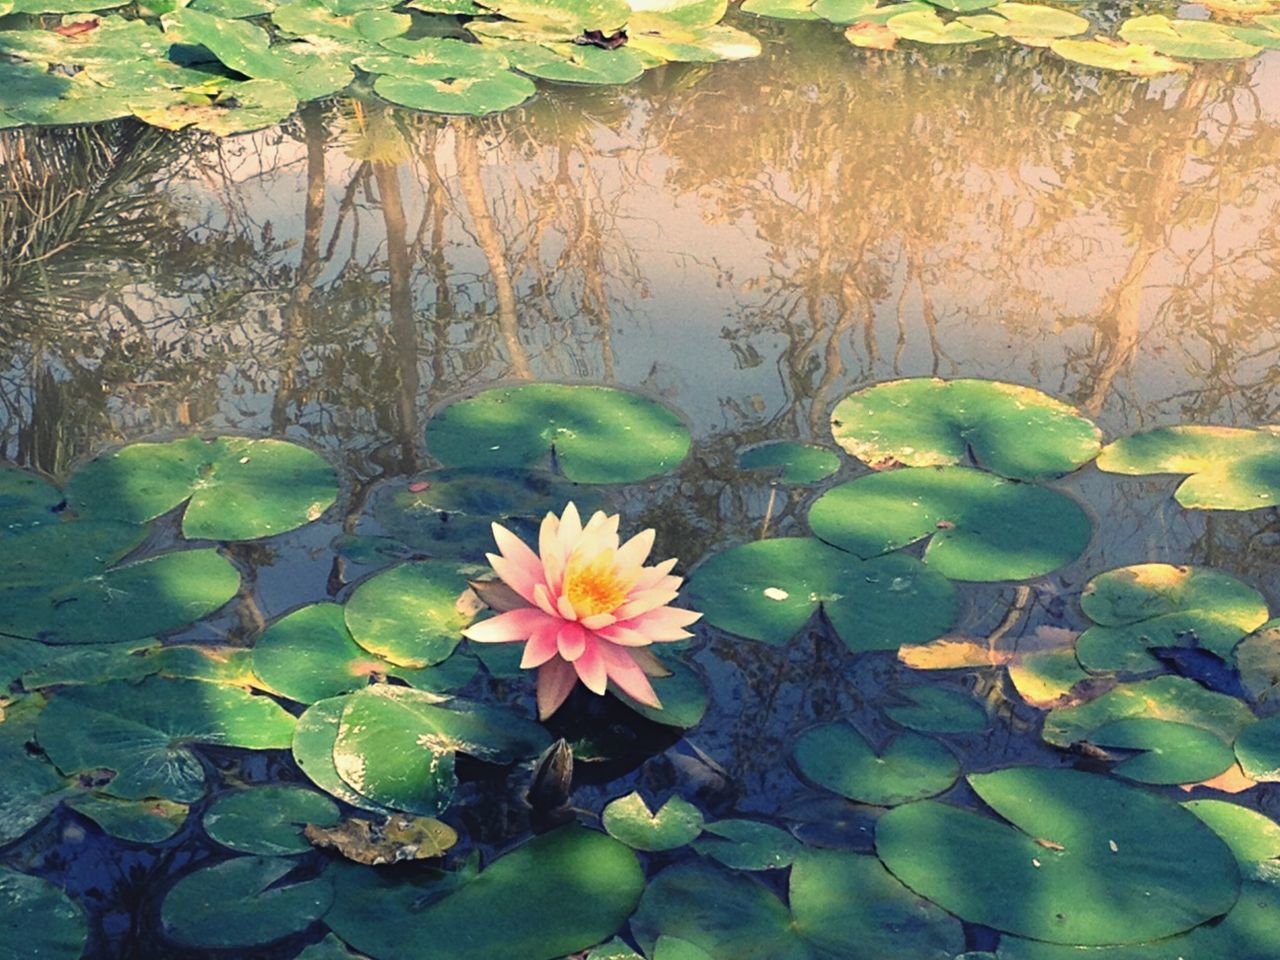 leaf, growth, flower, plant, nature, green color, beauty in nature, no people, day, outdoors, freshness, water lily, fragility, petal, lily pad, floating on water, water, close-up, lotus water lily, blooming, flower head, tree